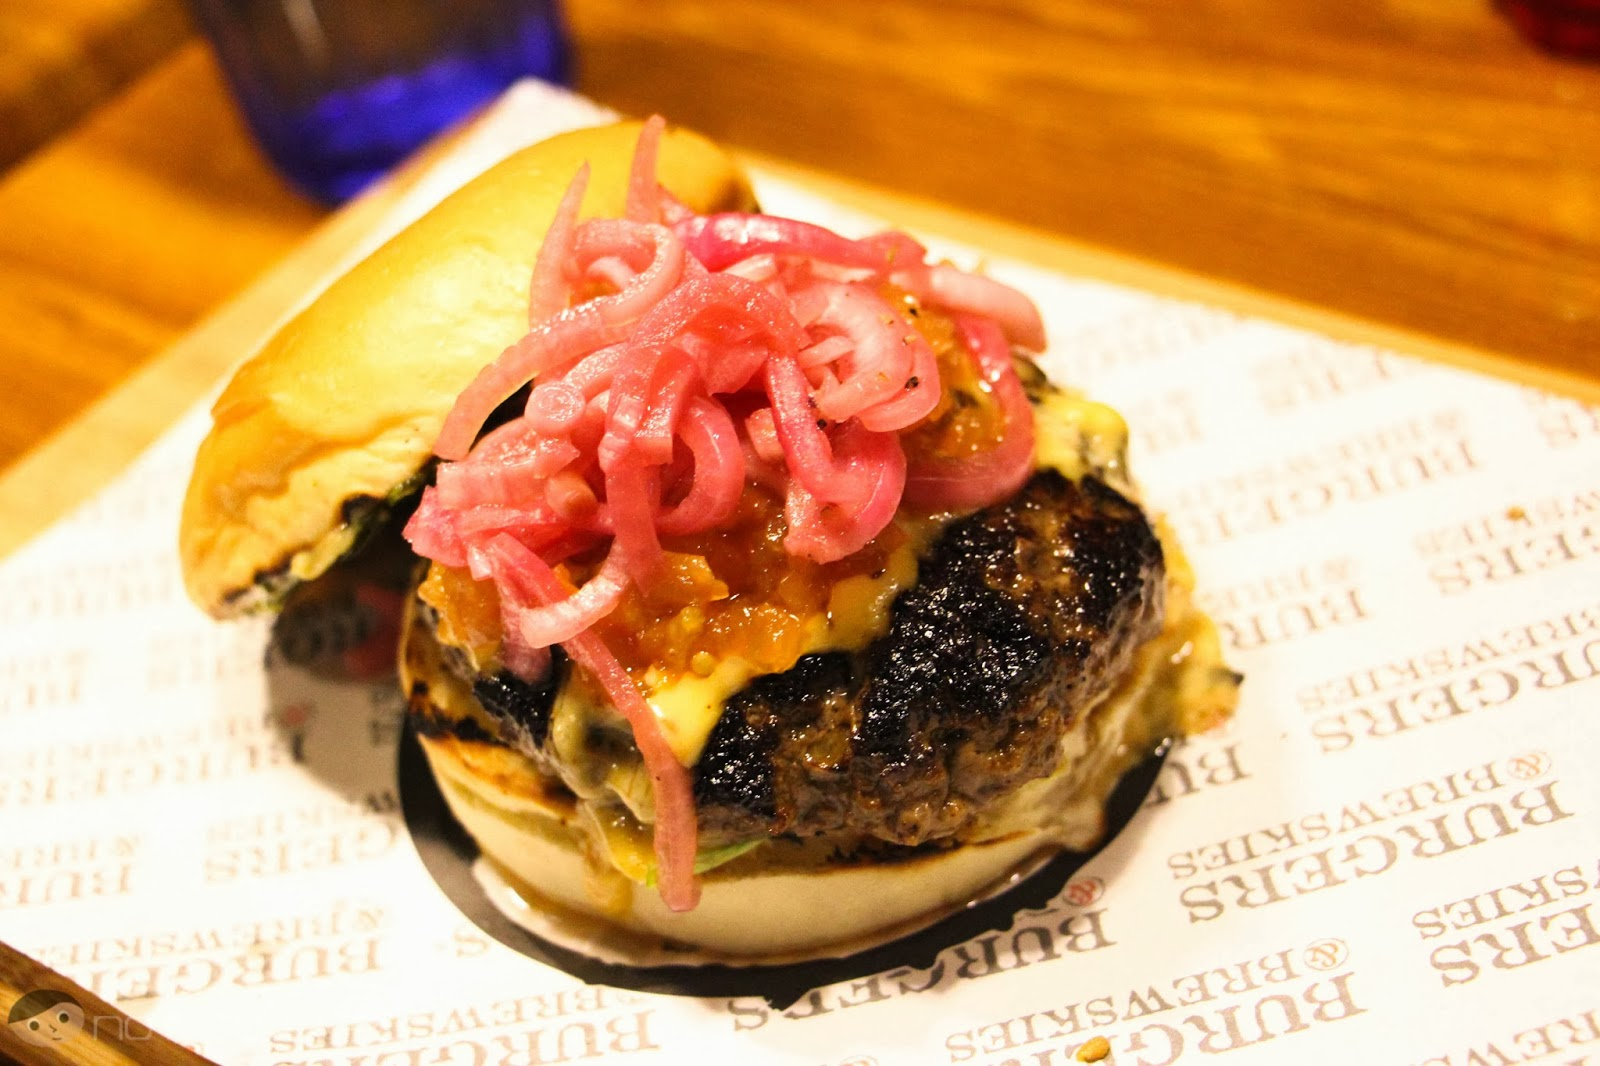 The Red-Haired Relish Burger of Burgers and Brewskies